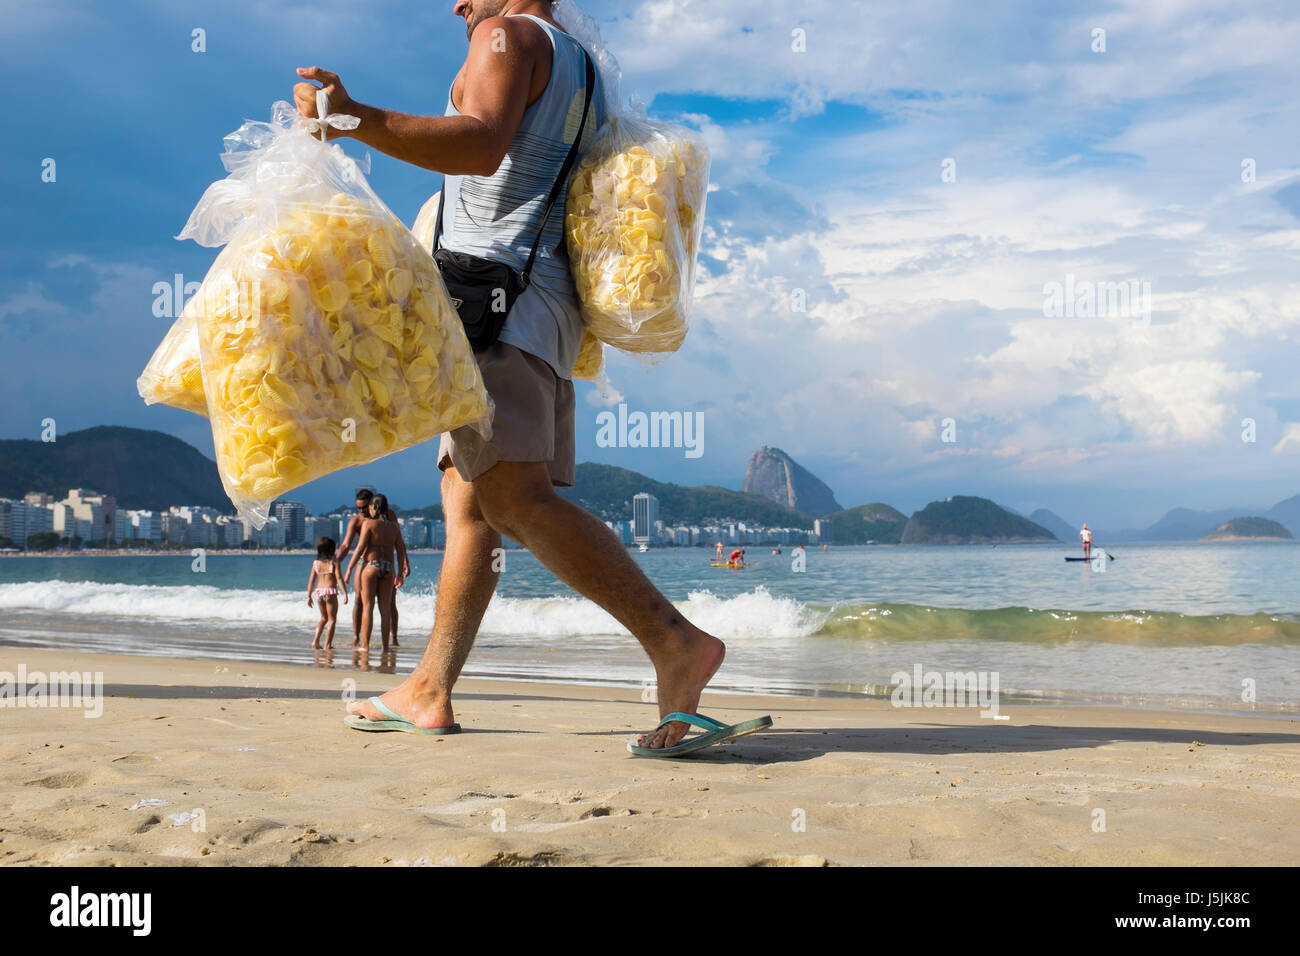 RIO DE JANEIRO - MARCH 2, 2017: A Brazilian vendor walks along Copacabana Beach carrying bags of potato chips for - Stock Image